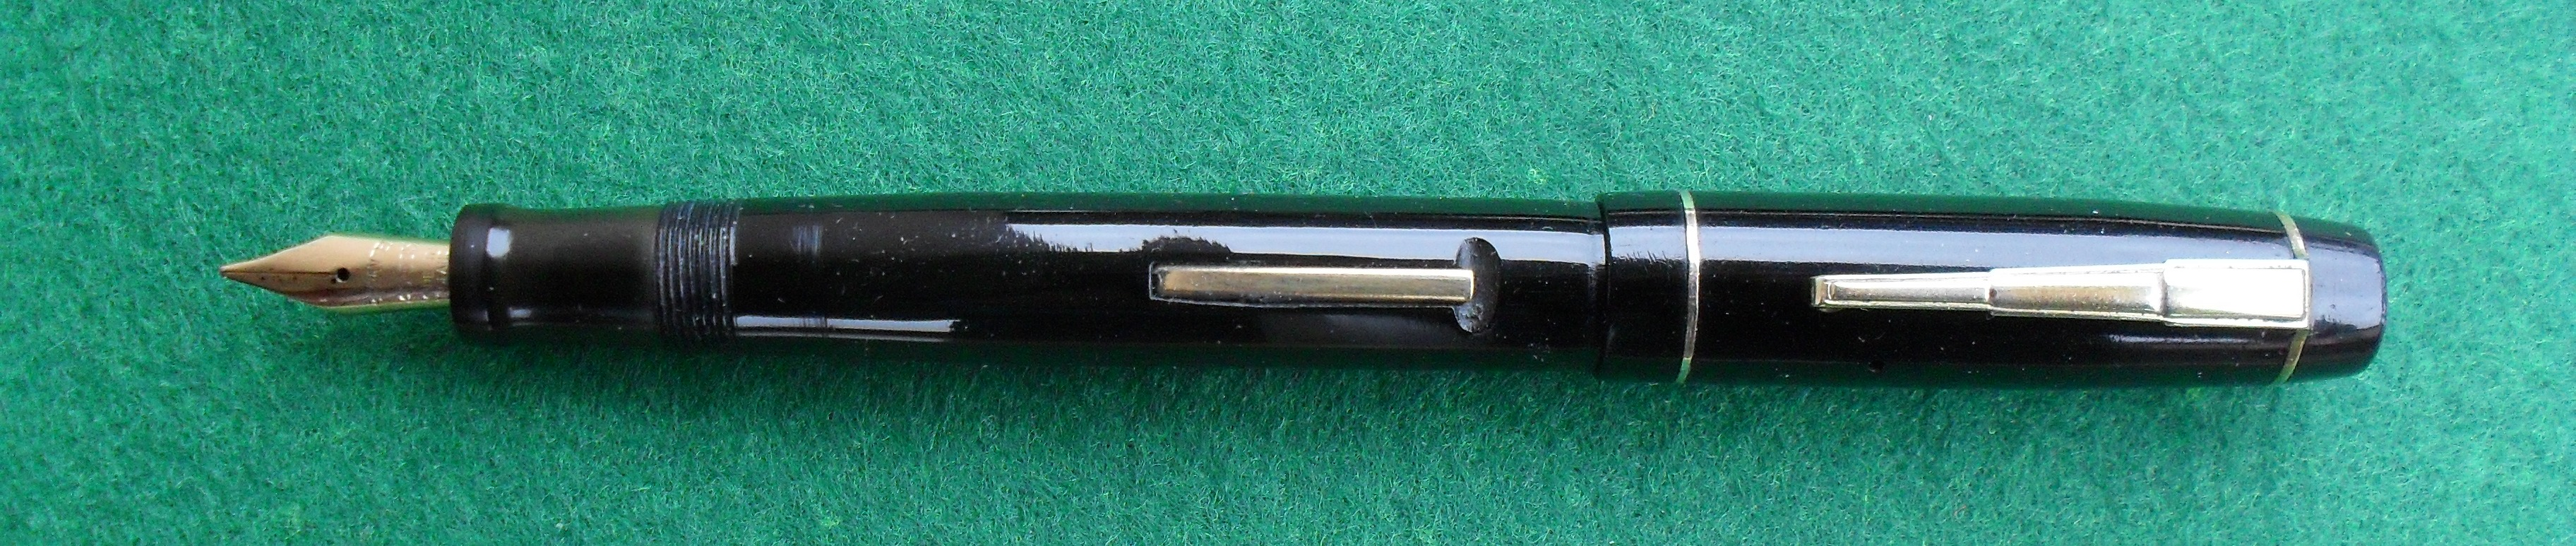 The Unique Pen - open.jpg